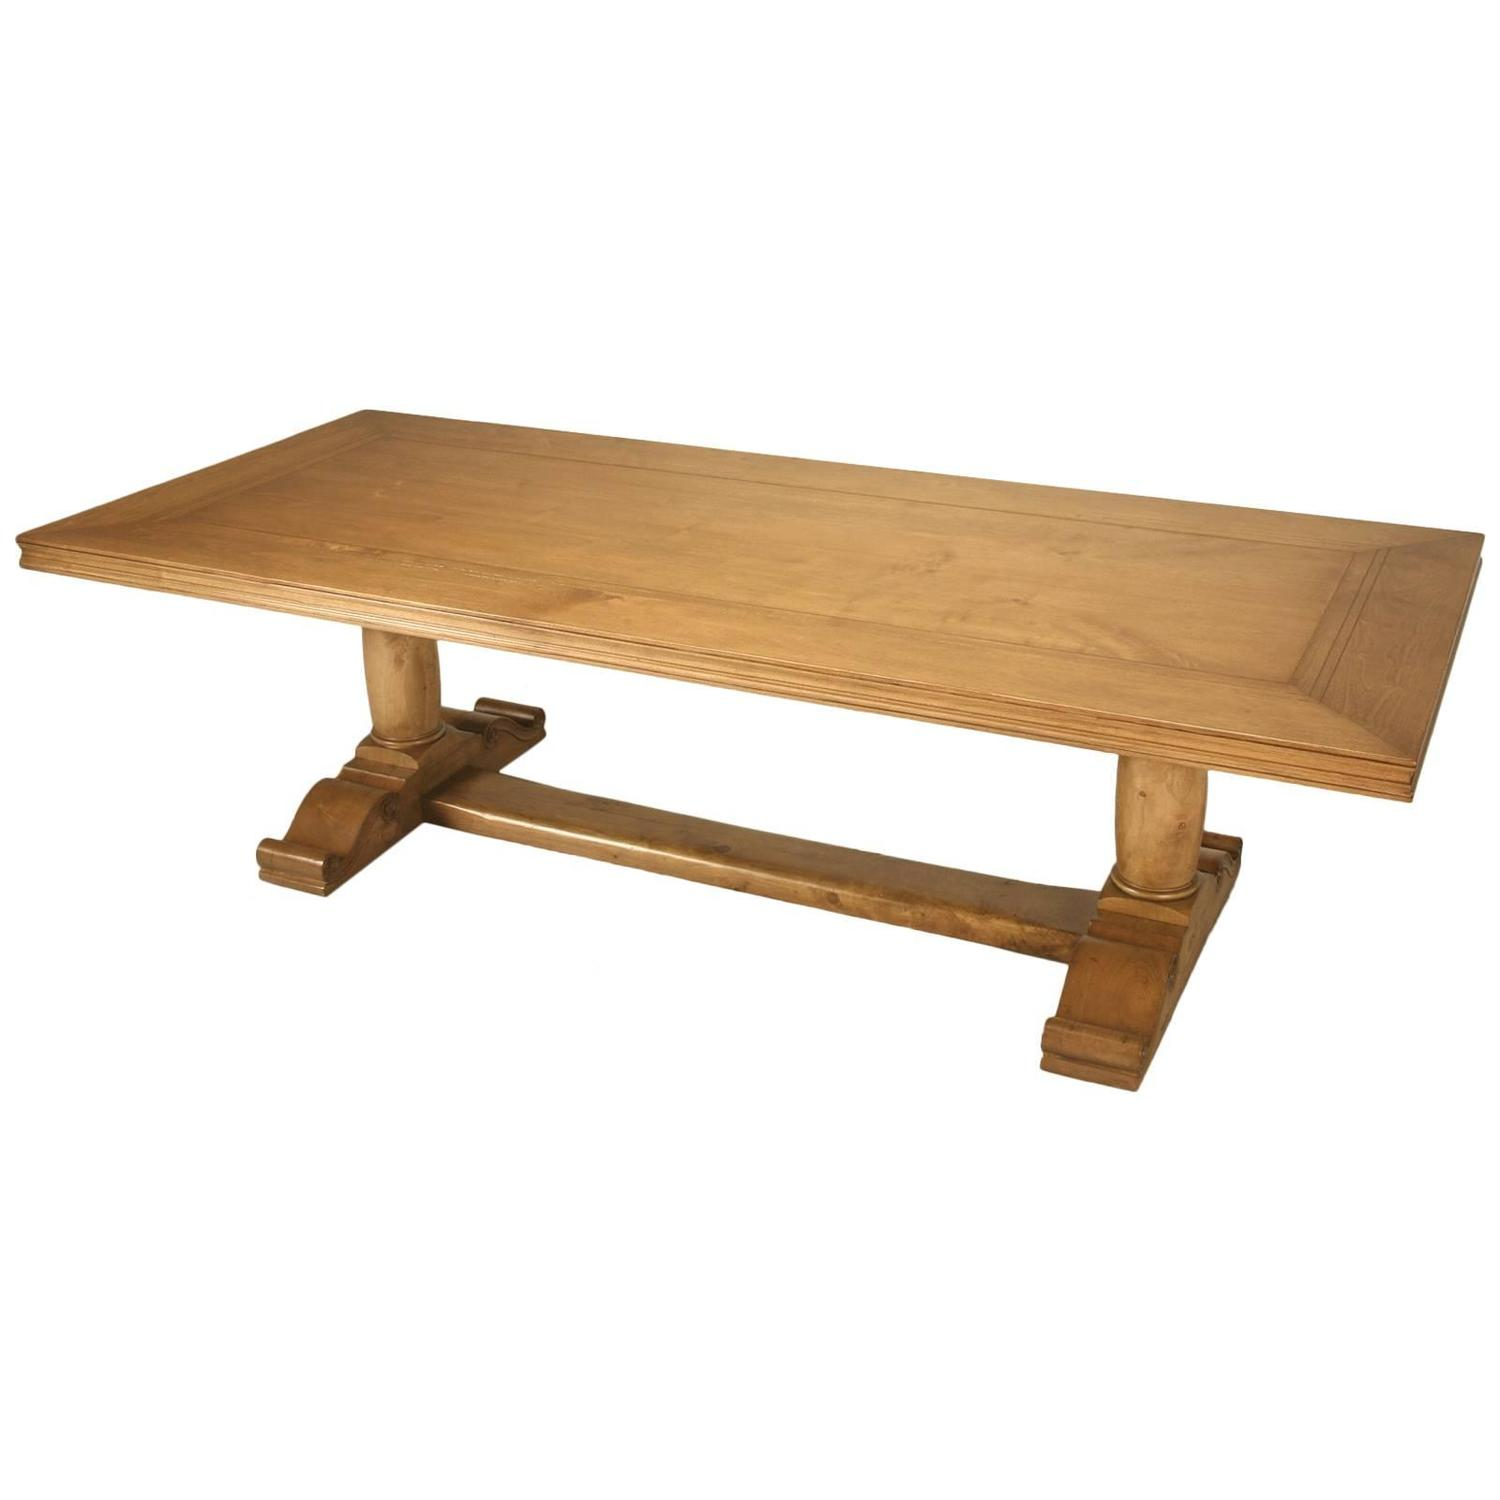 Custom handmade french walnut trestle dining table at 1stdibs for Dining room tables handmade